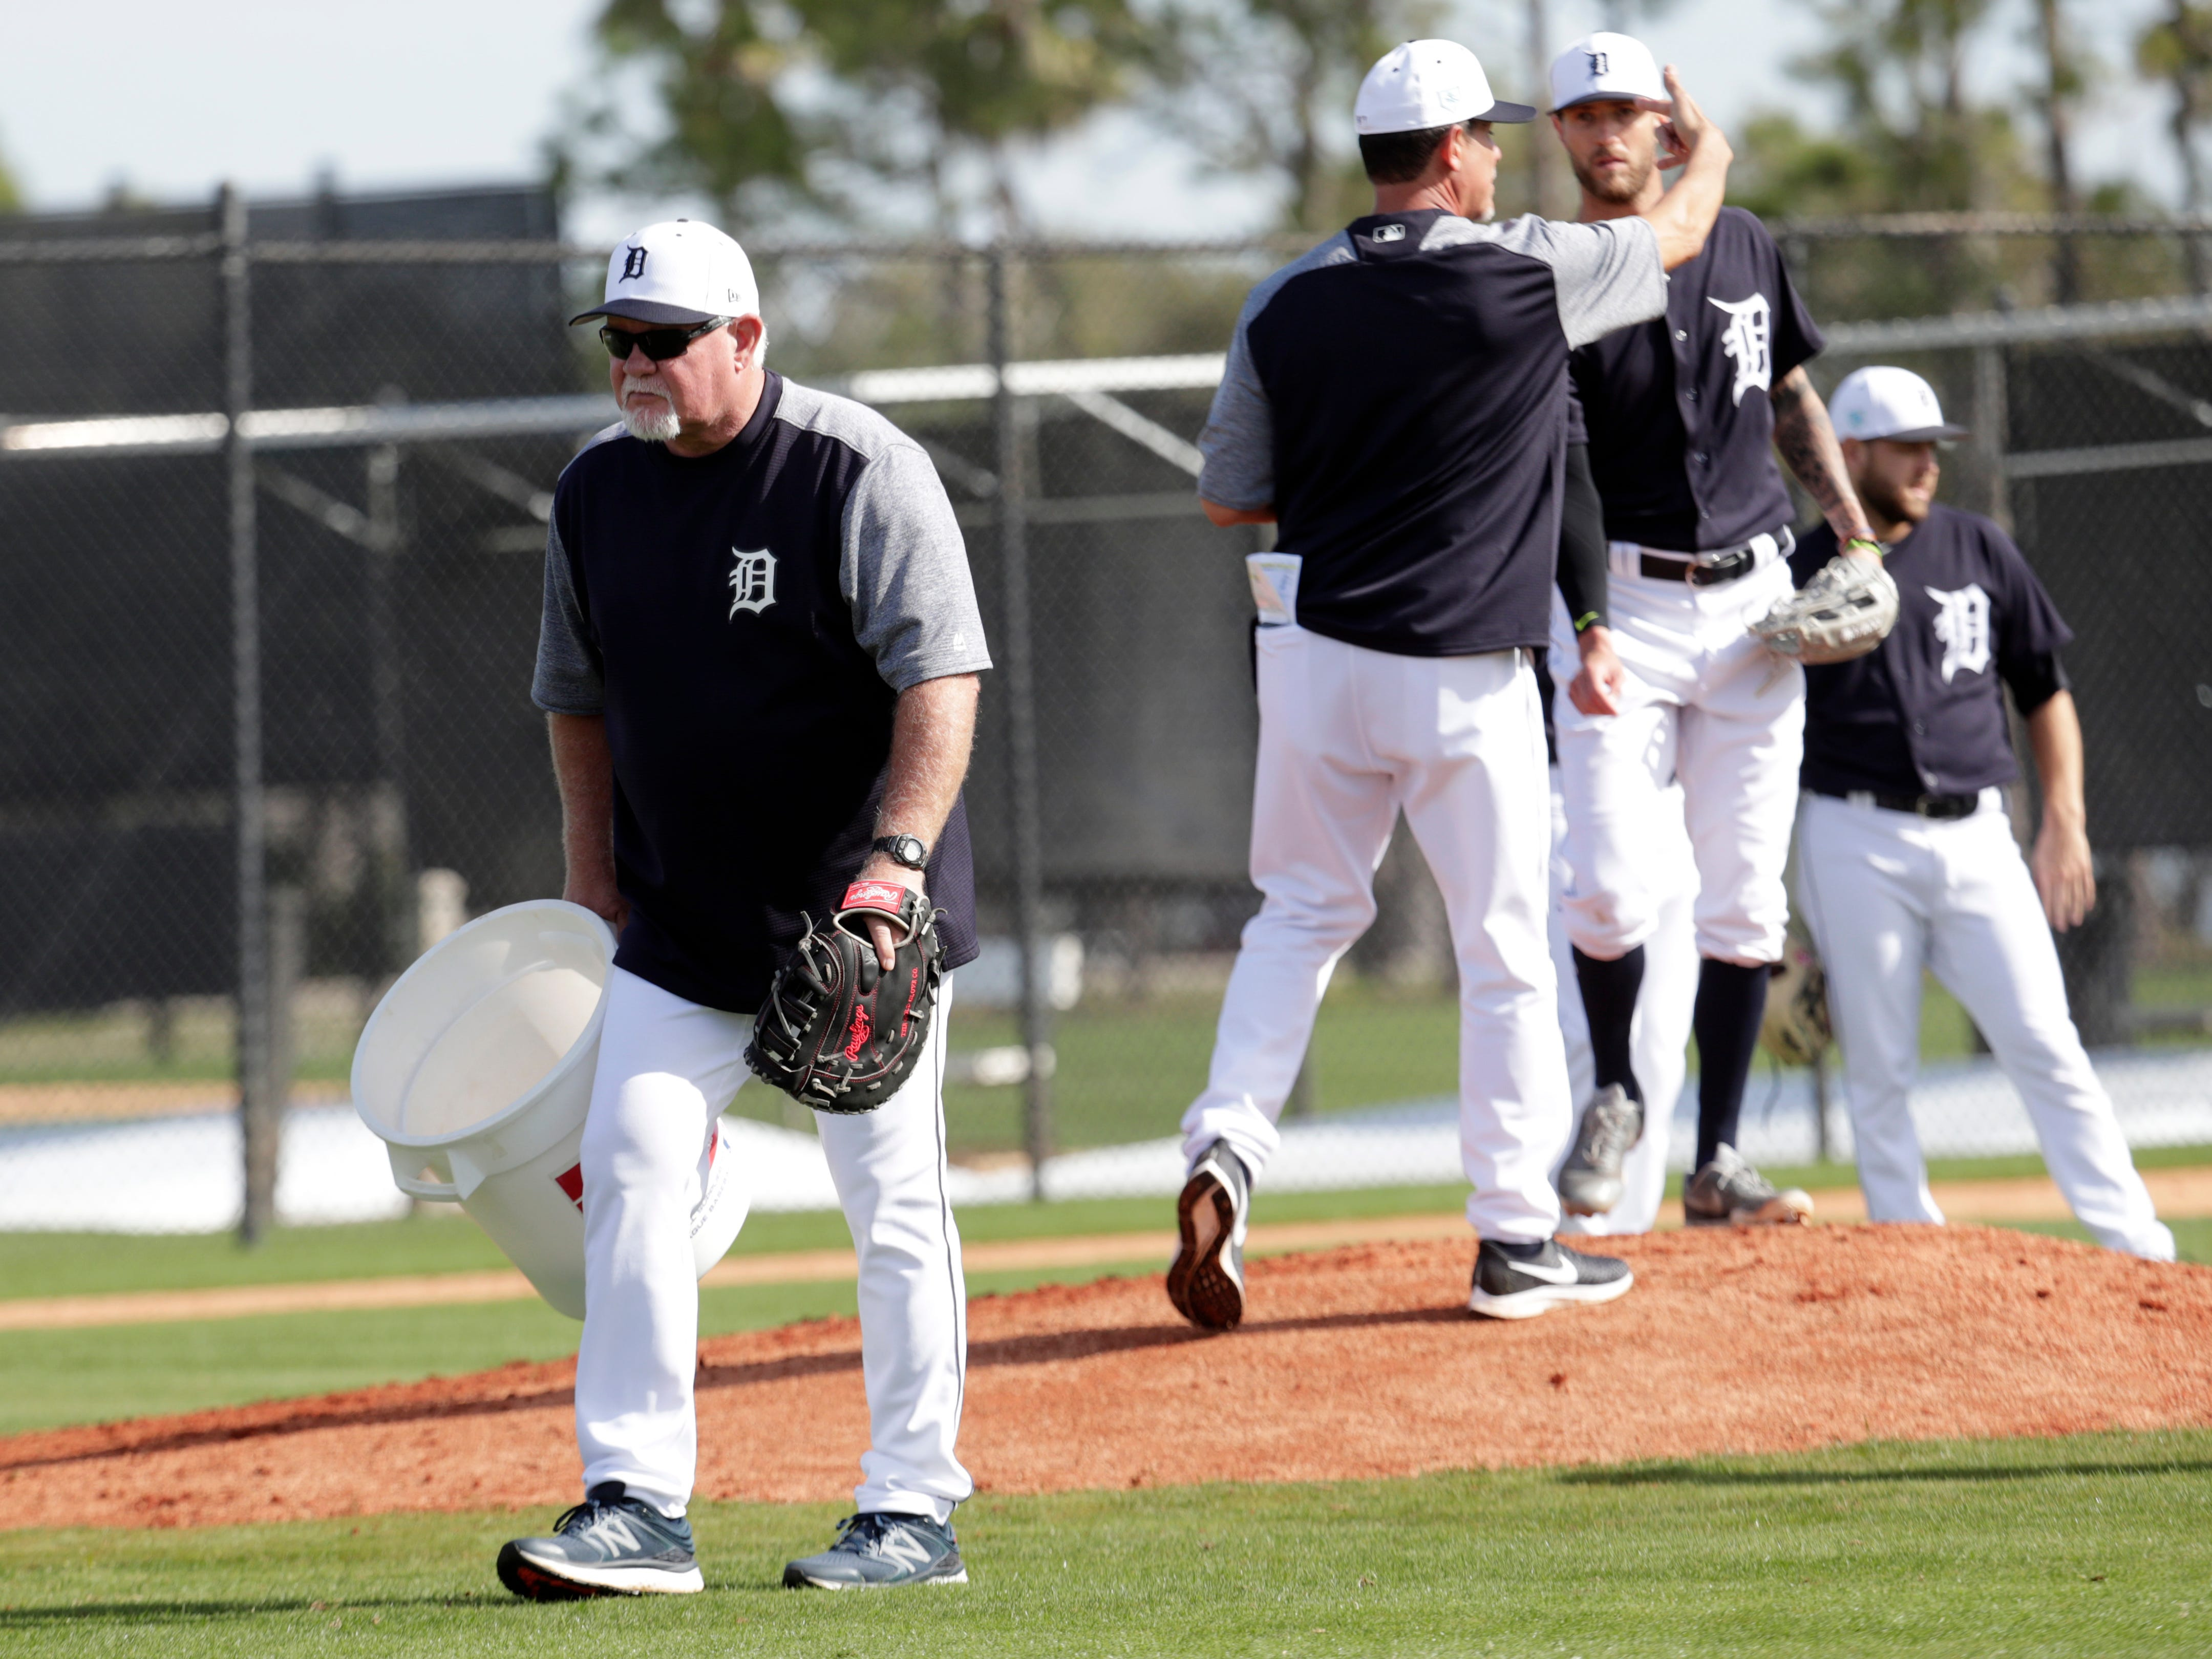 Detroit Tigers manager Ron Gardenhire collects balls as players do drills.